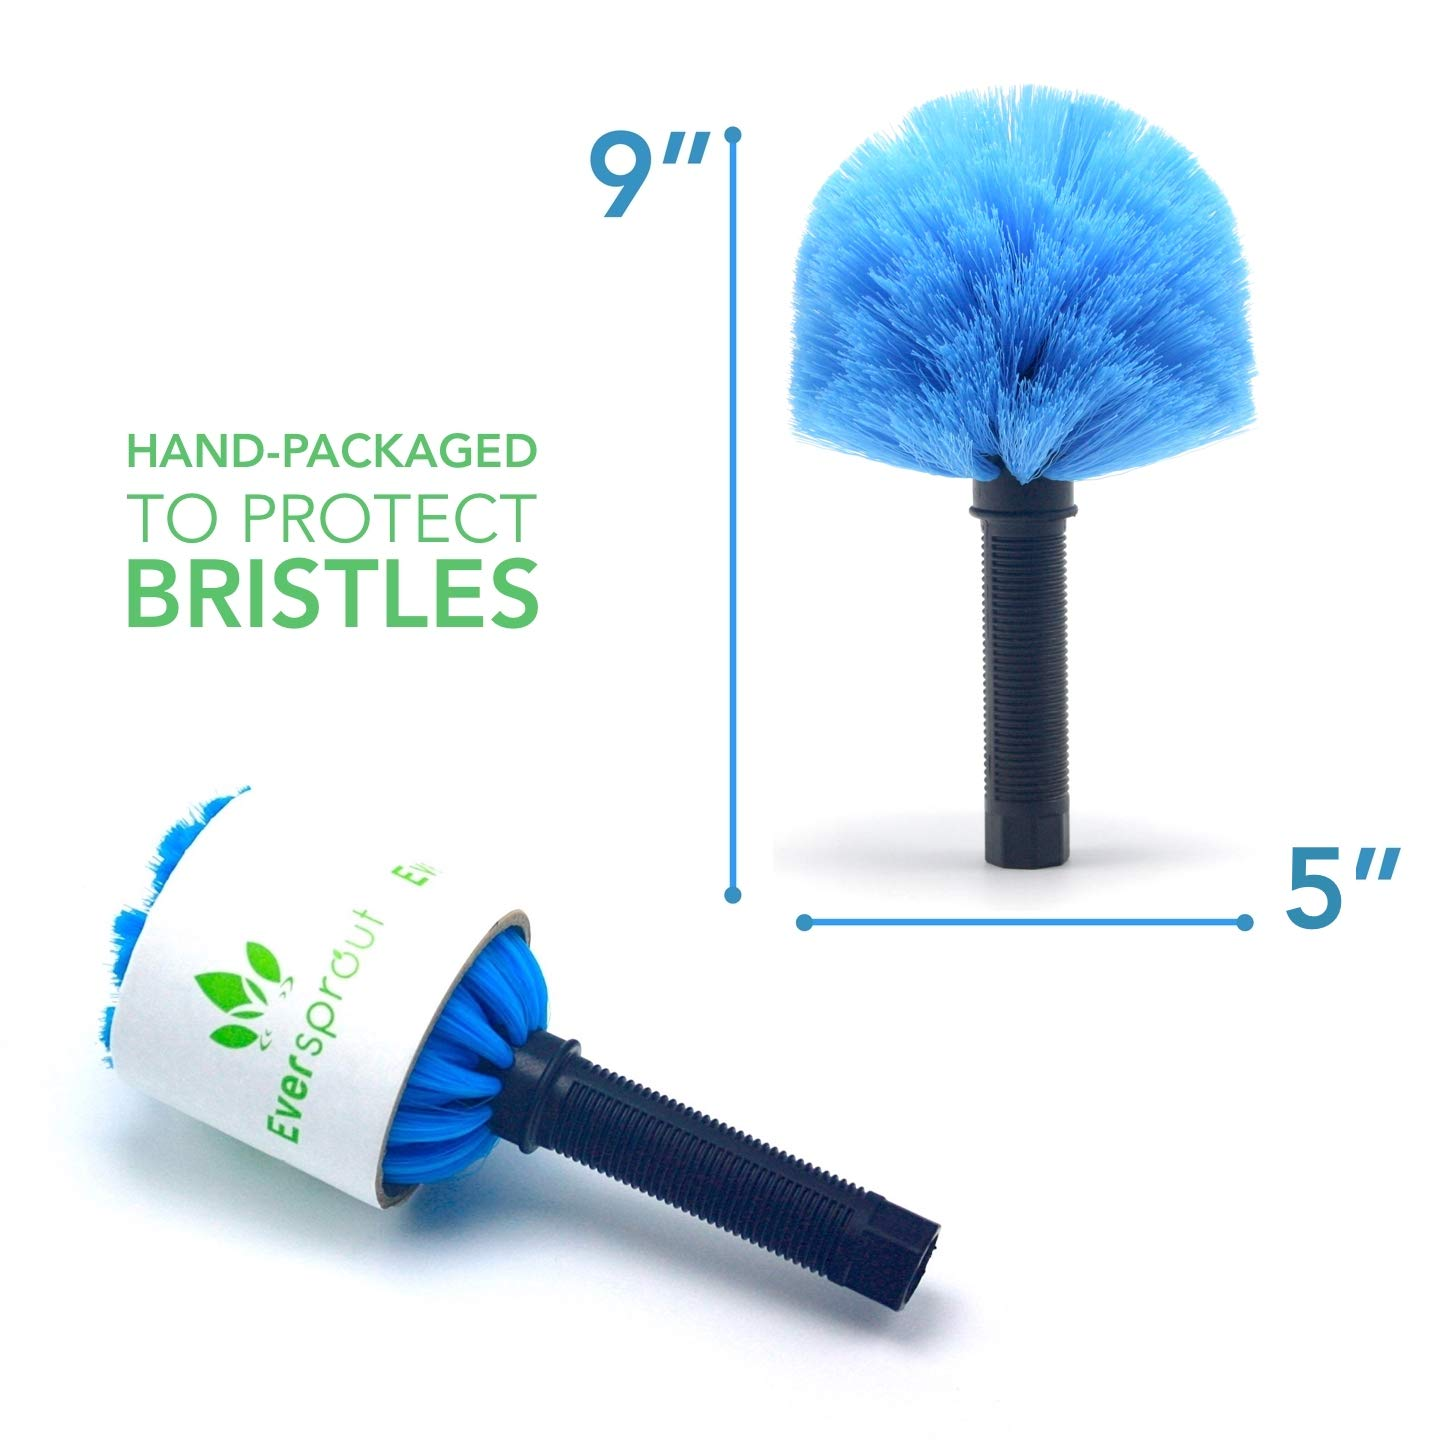 EVERSPROUT 4-Pack Duster Squeegee Kit with Extension-Pole (20+ Foot Reach) | Swivel Squeegee, Hand-Packaged Cobweb Duster, Microfiber Feather Duster, Flexible Ceiling Fan Duster, 12 ft Telescopic Pole by EVERSPROUT (Image #7)